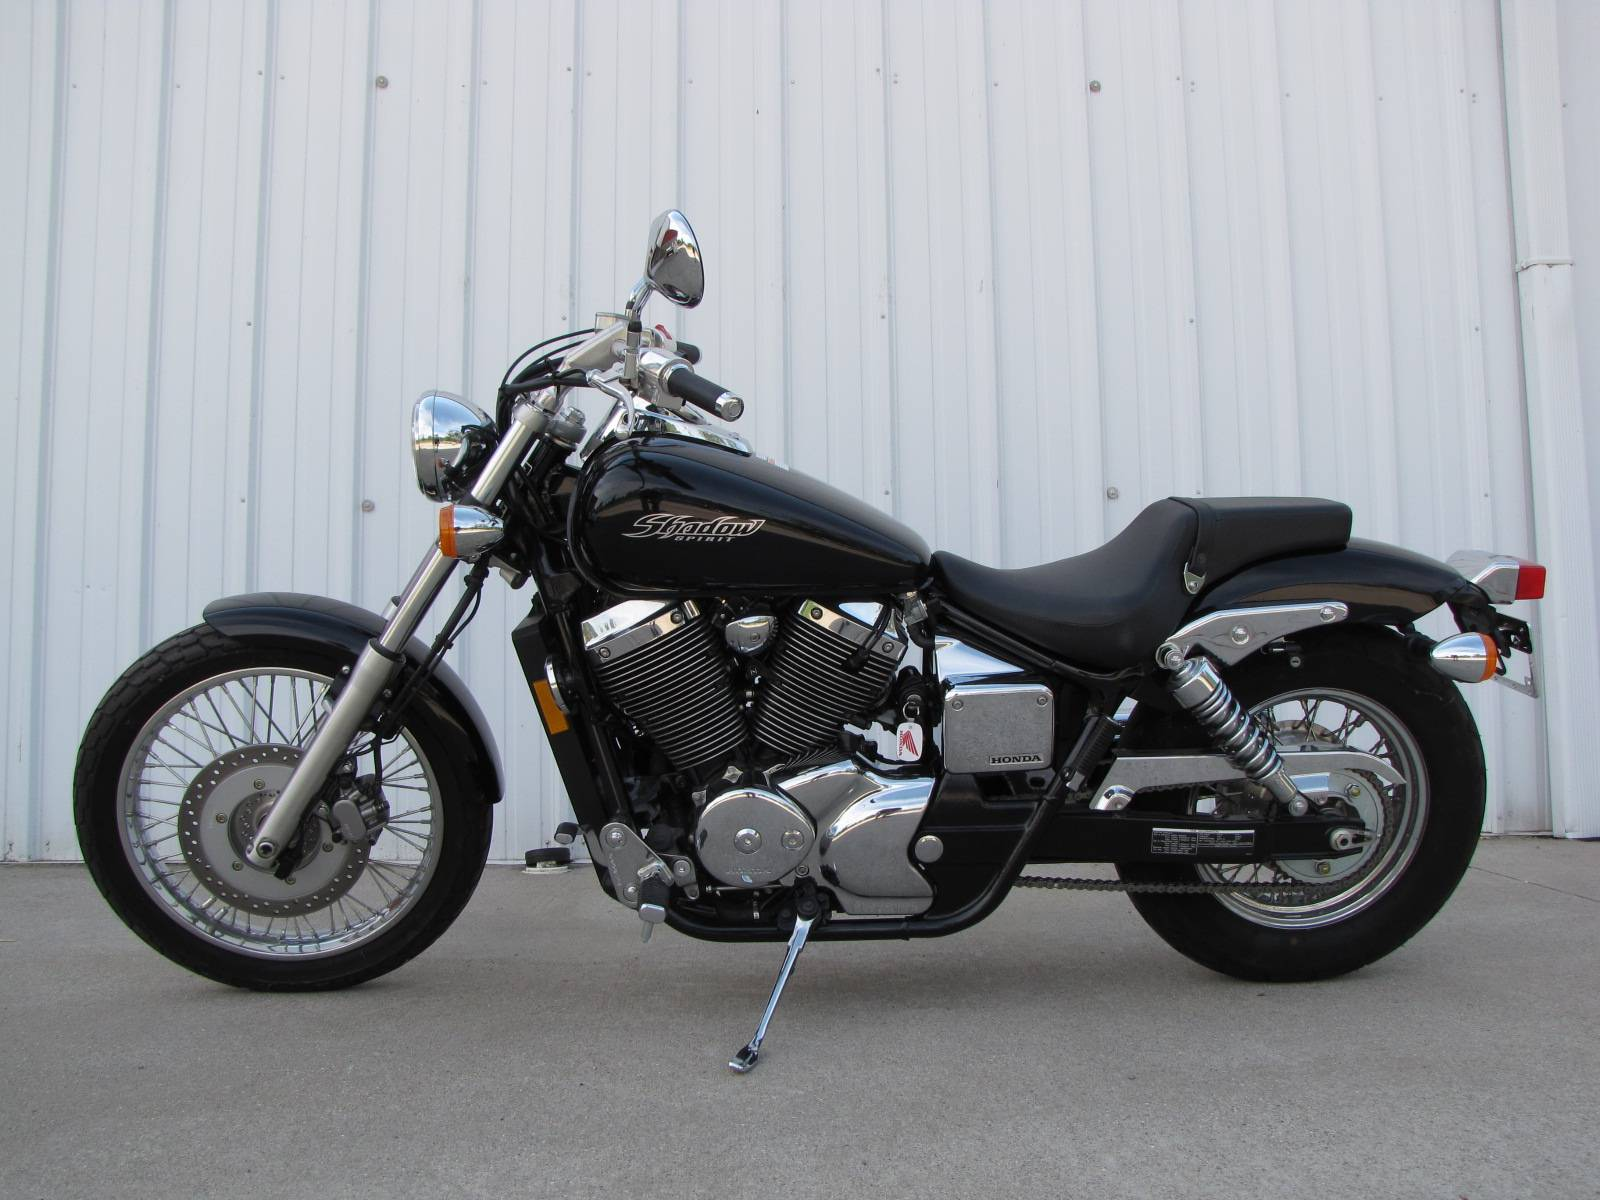 used 2007 honda shadow spirit 750 c2 motorcycles in ottawa oh stock number n a. Black Bedroom Furniture Sets. Home Design Ideas